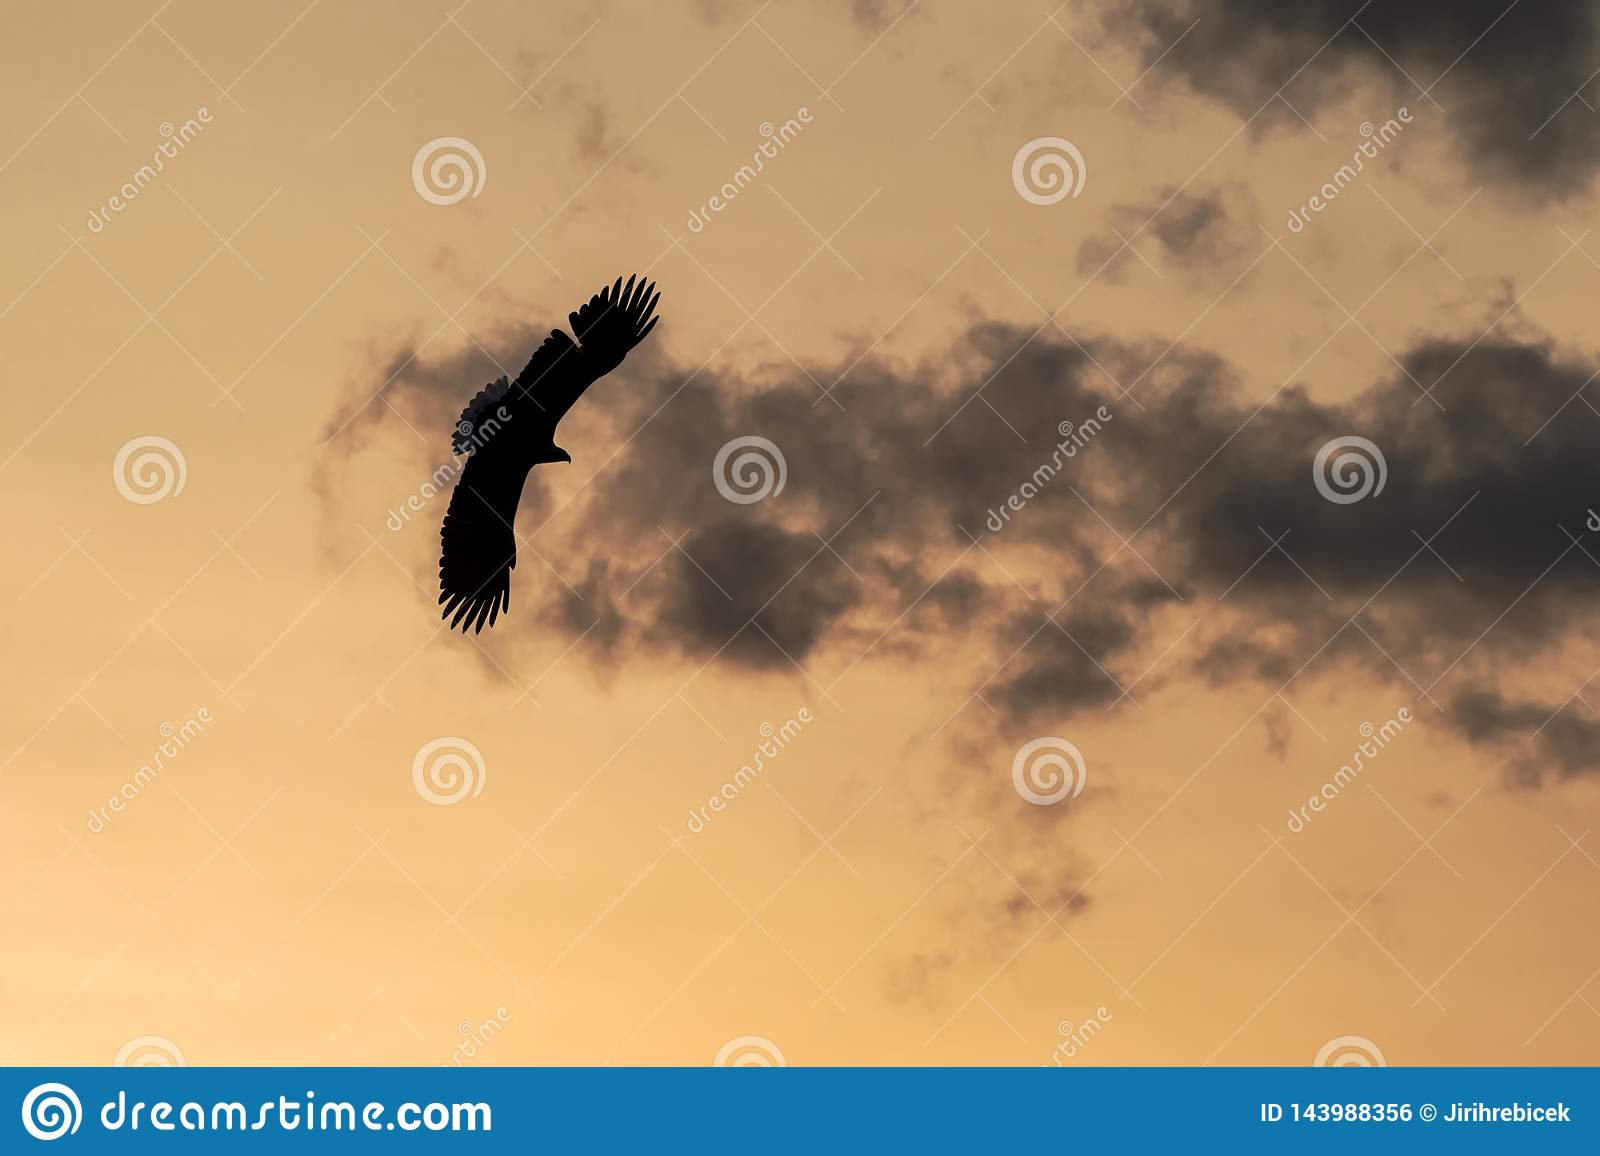 White-tailed eagle in flight, eagle flying against colorful sky with clouds in Hokkaido, Japan, silhouette of eagle at sunrise, ma